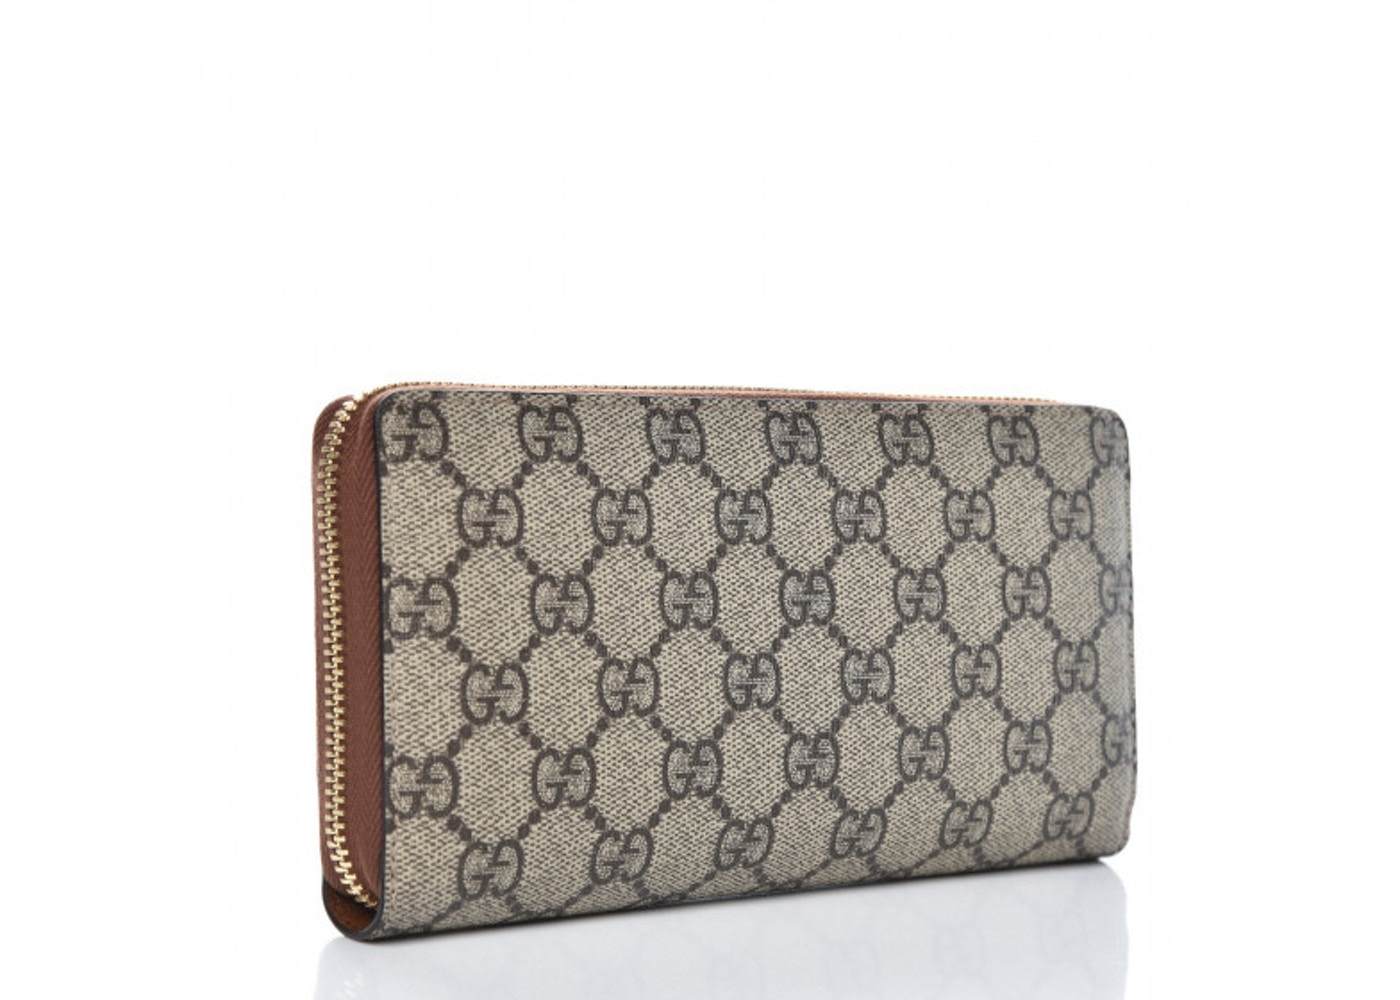 b8a3039657a1 Buy & Sell Gucci Other Handbags - New Highest Bids